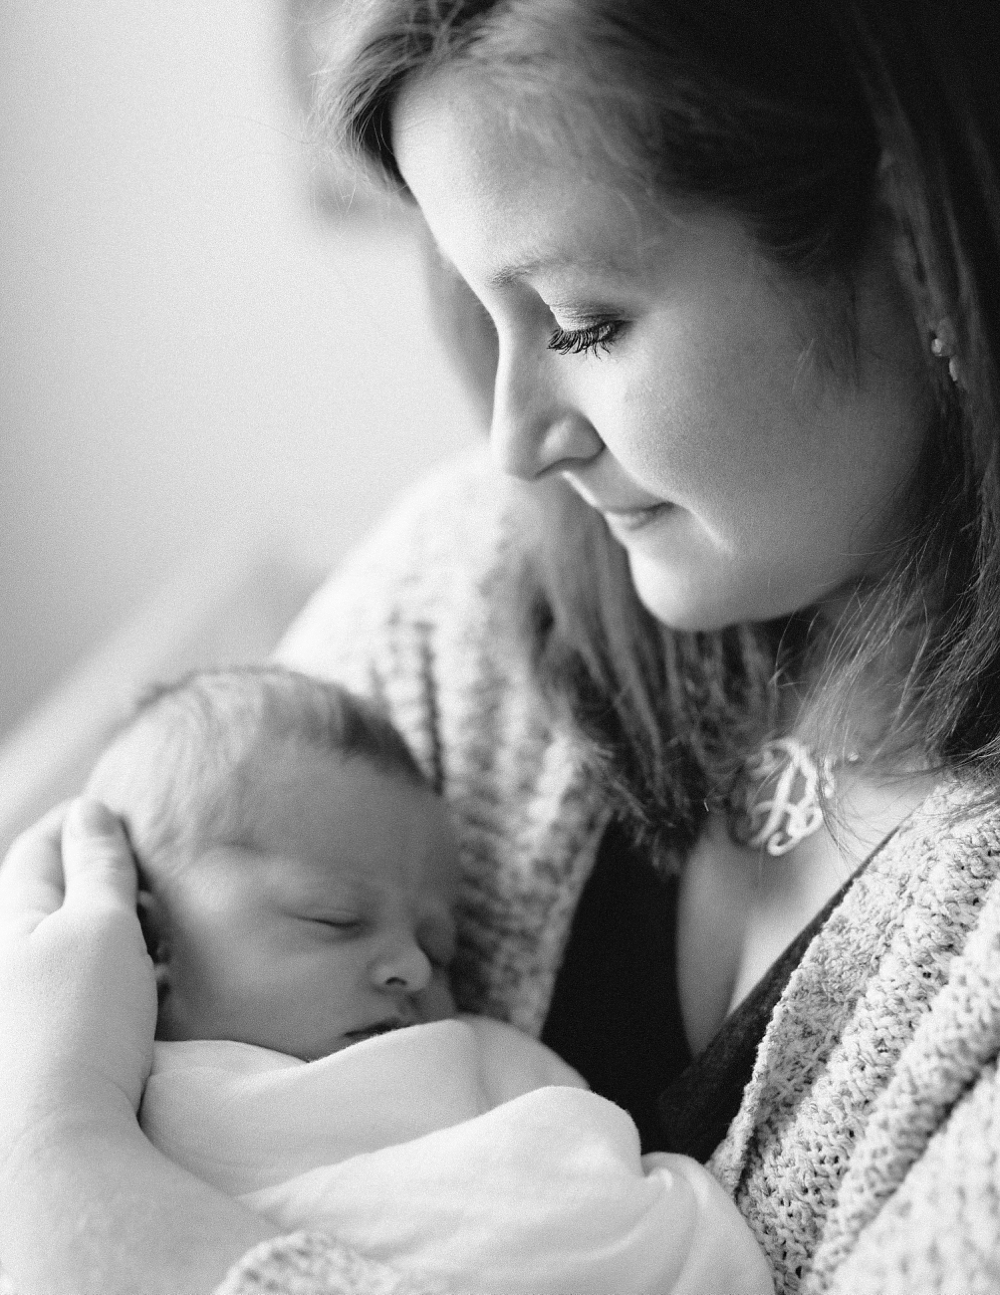 richmond_newborn_lifestyle_photography_fine_art_film_0010.jpg